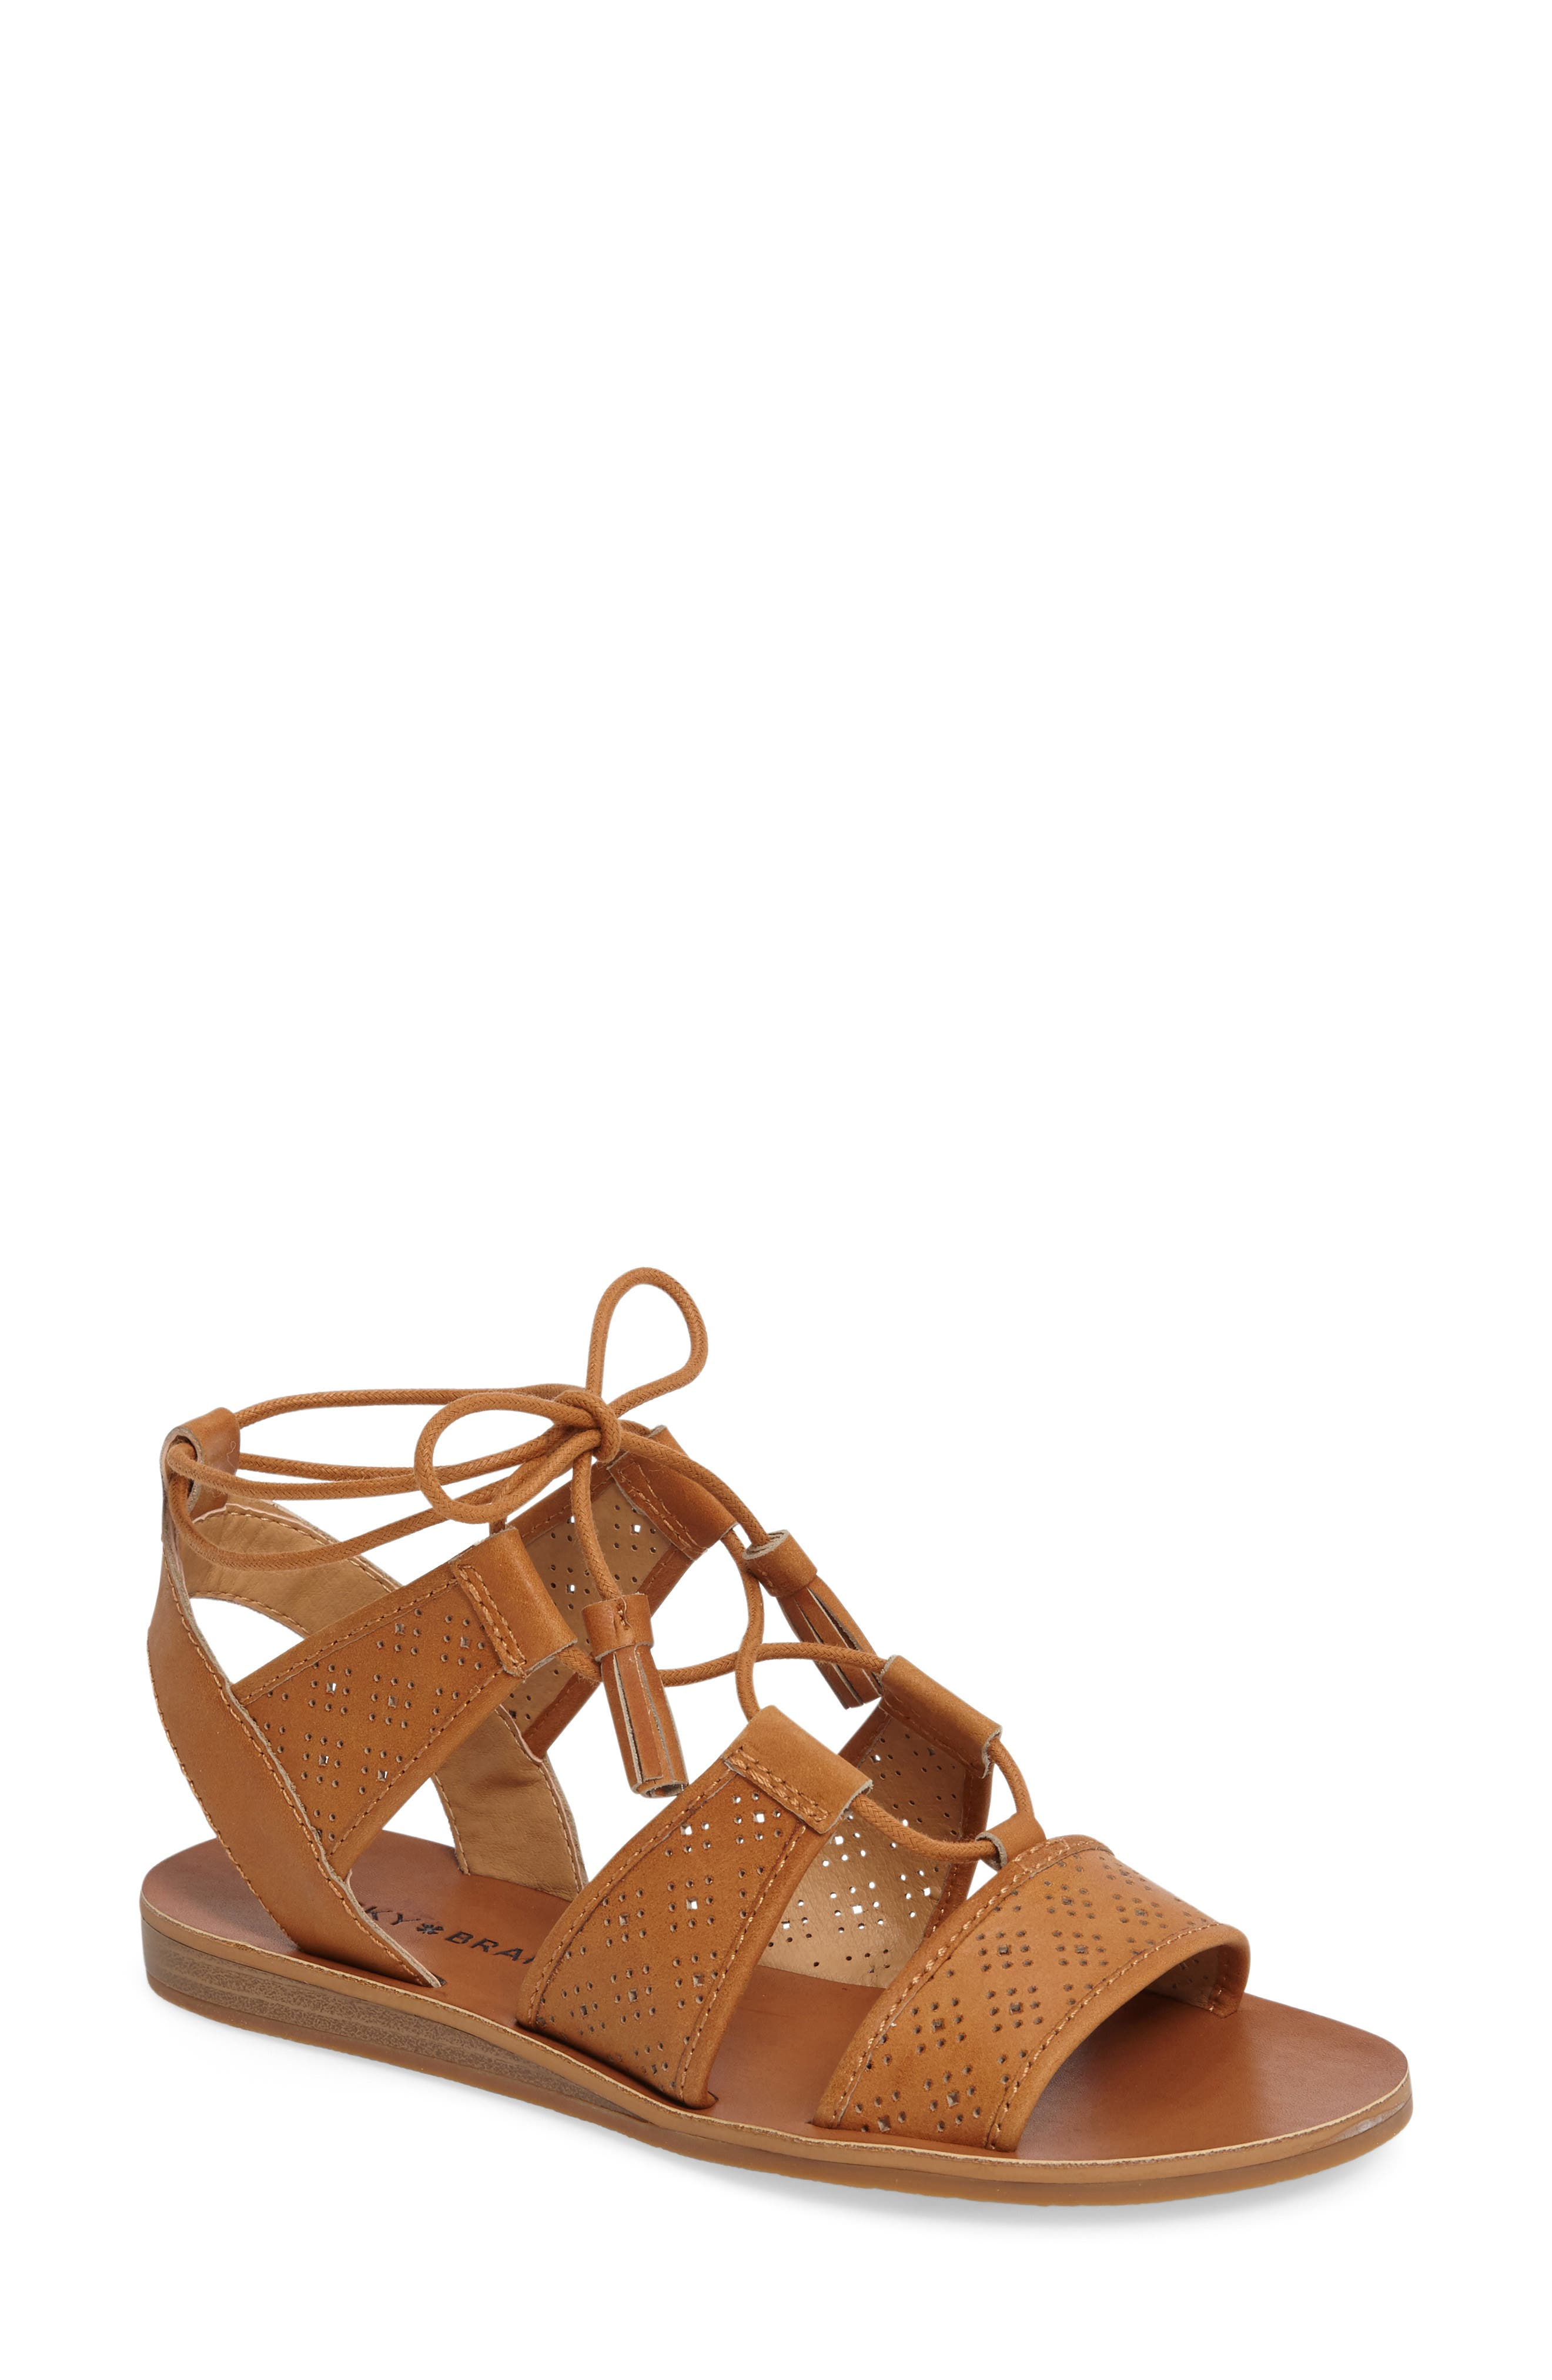 Brenny Sandal,                             Main thumbnail 1, color,                             Cafe Leather